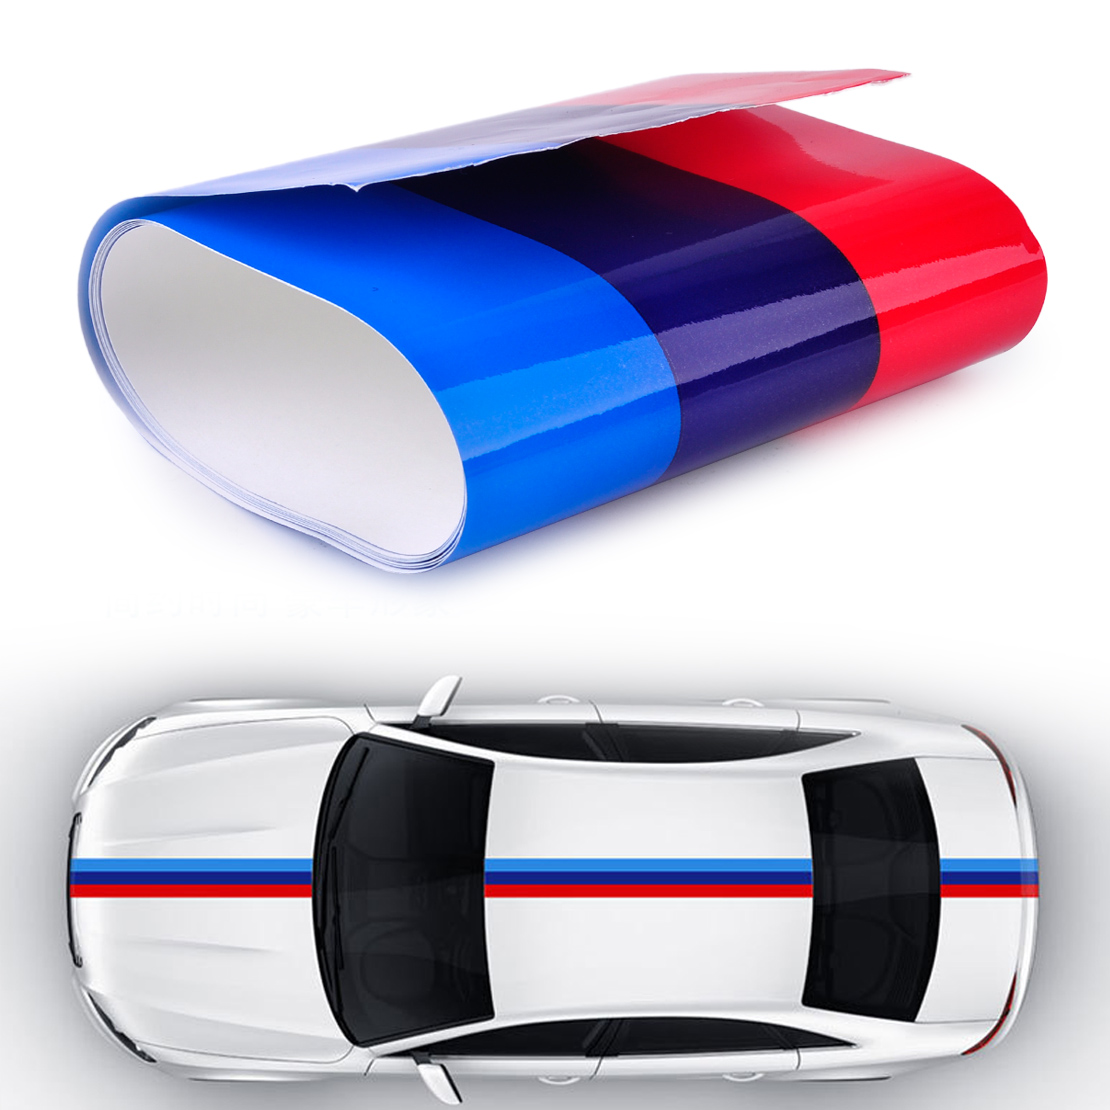 CITALL 2Mx15cm Car Auto Hood Roof Fender M-Colored Power Flag Stripe Sticker Decal for BMW 1 2 3 4 5 7 Series Q5 Q7 X1 X3 X5 X6 partol black car roof rack cross bars roof luggage carrier cargo boxes bike rack 45kg 100lbs for honda pilot 2013 2014 2015